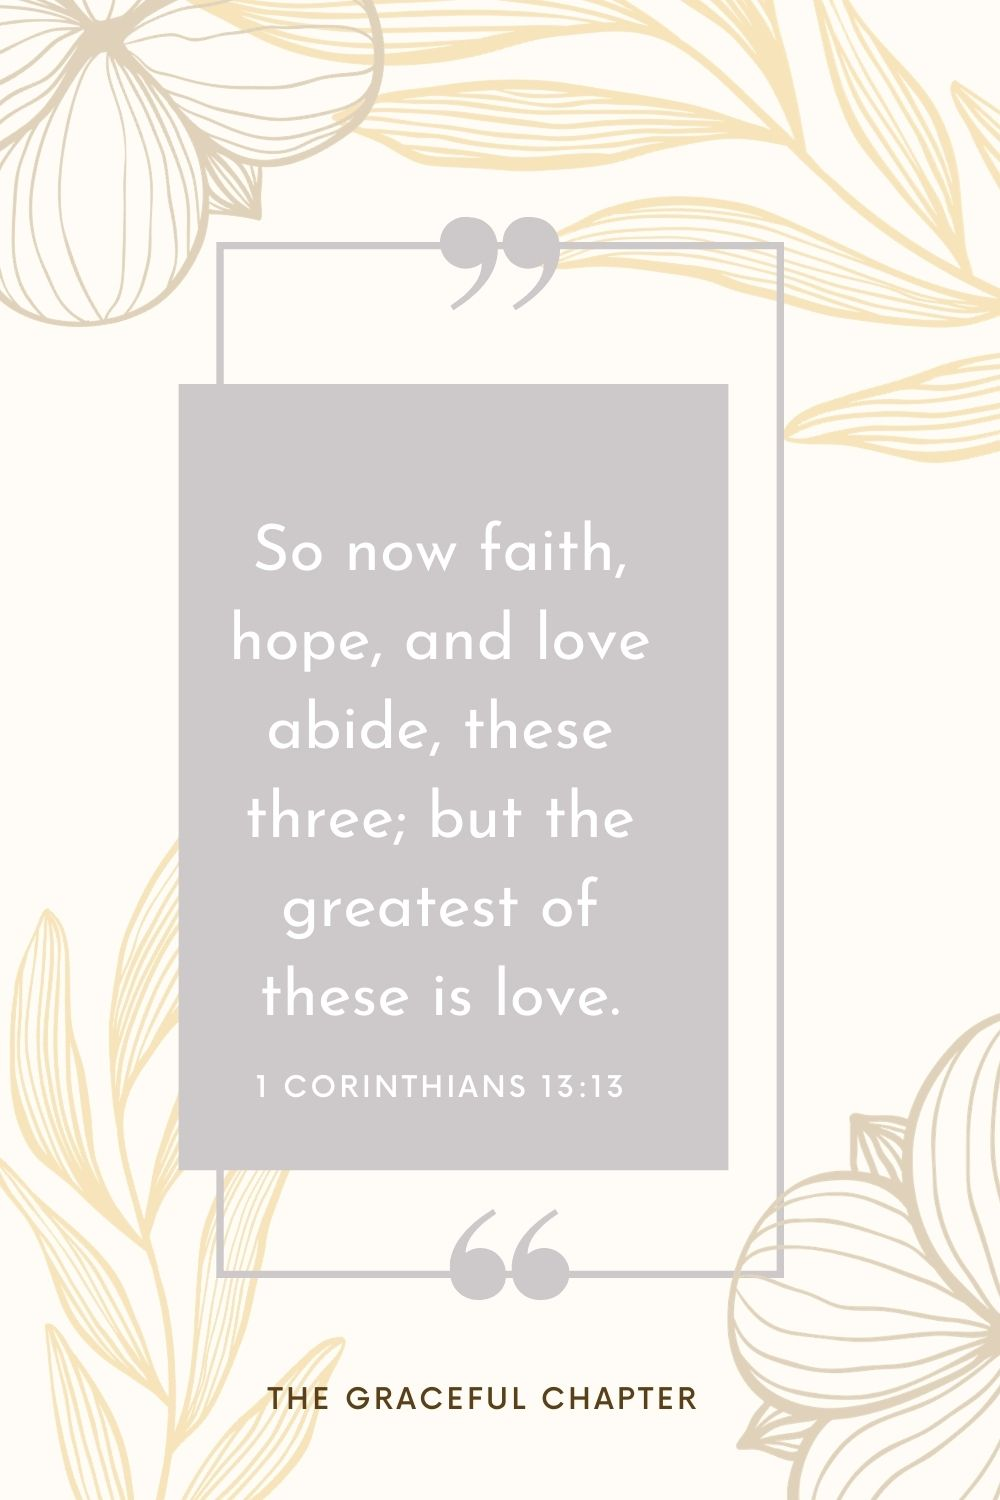 So now faith, hope, and love abide, these three; but the greatest of these is love. 1 Corinthians 13:13